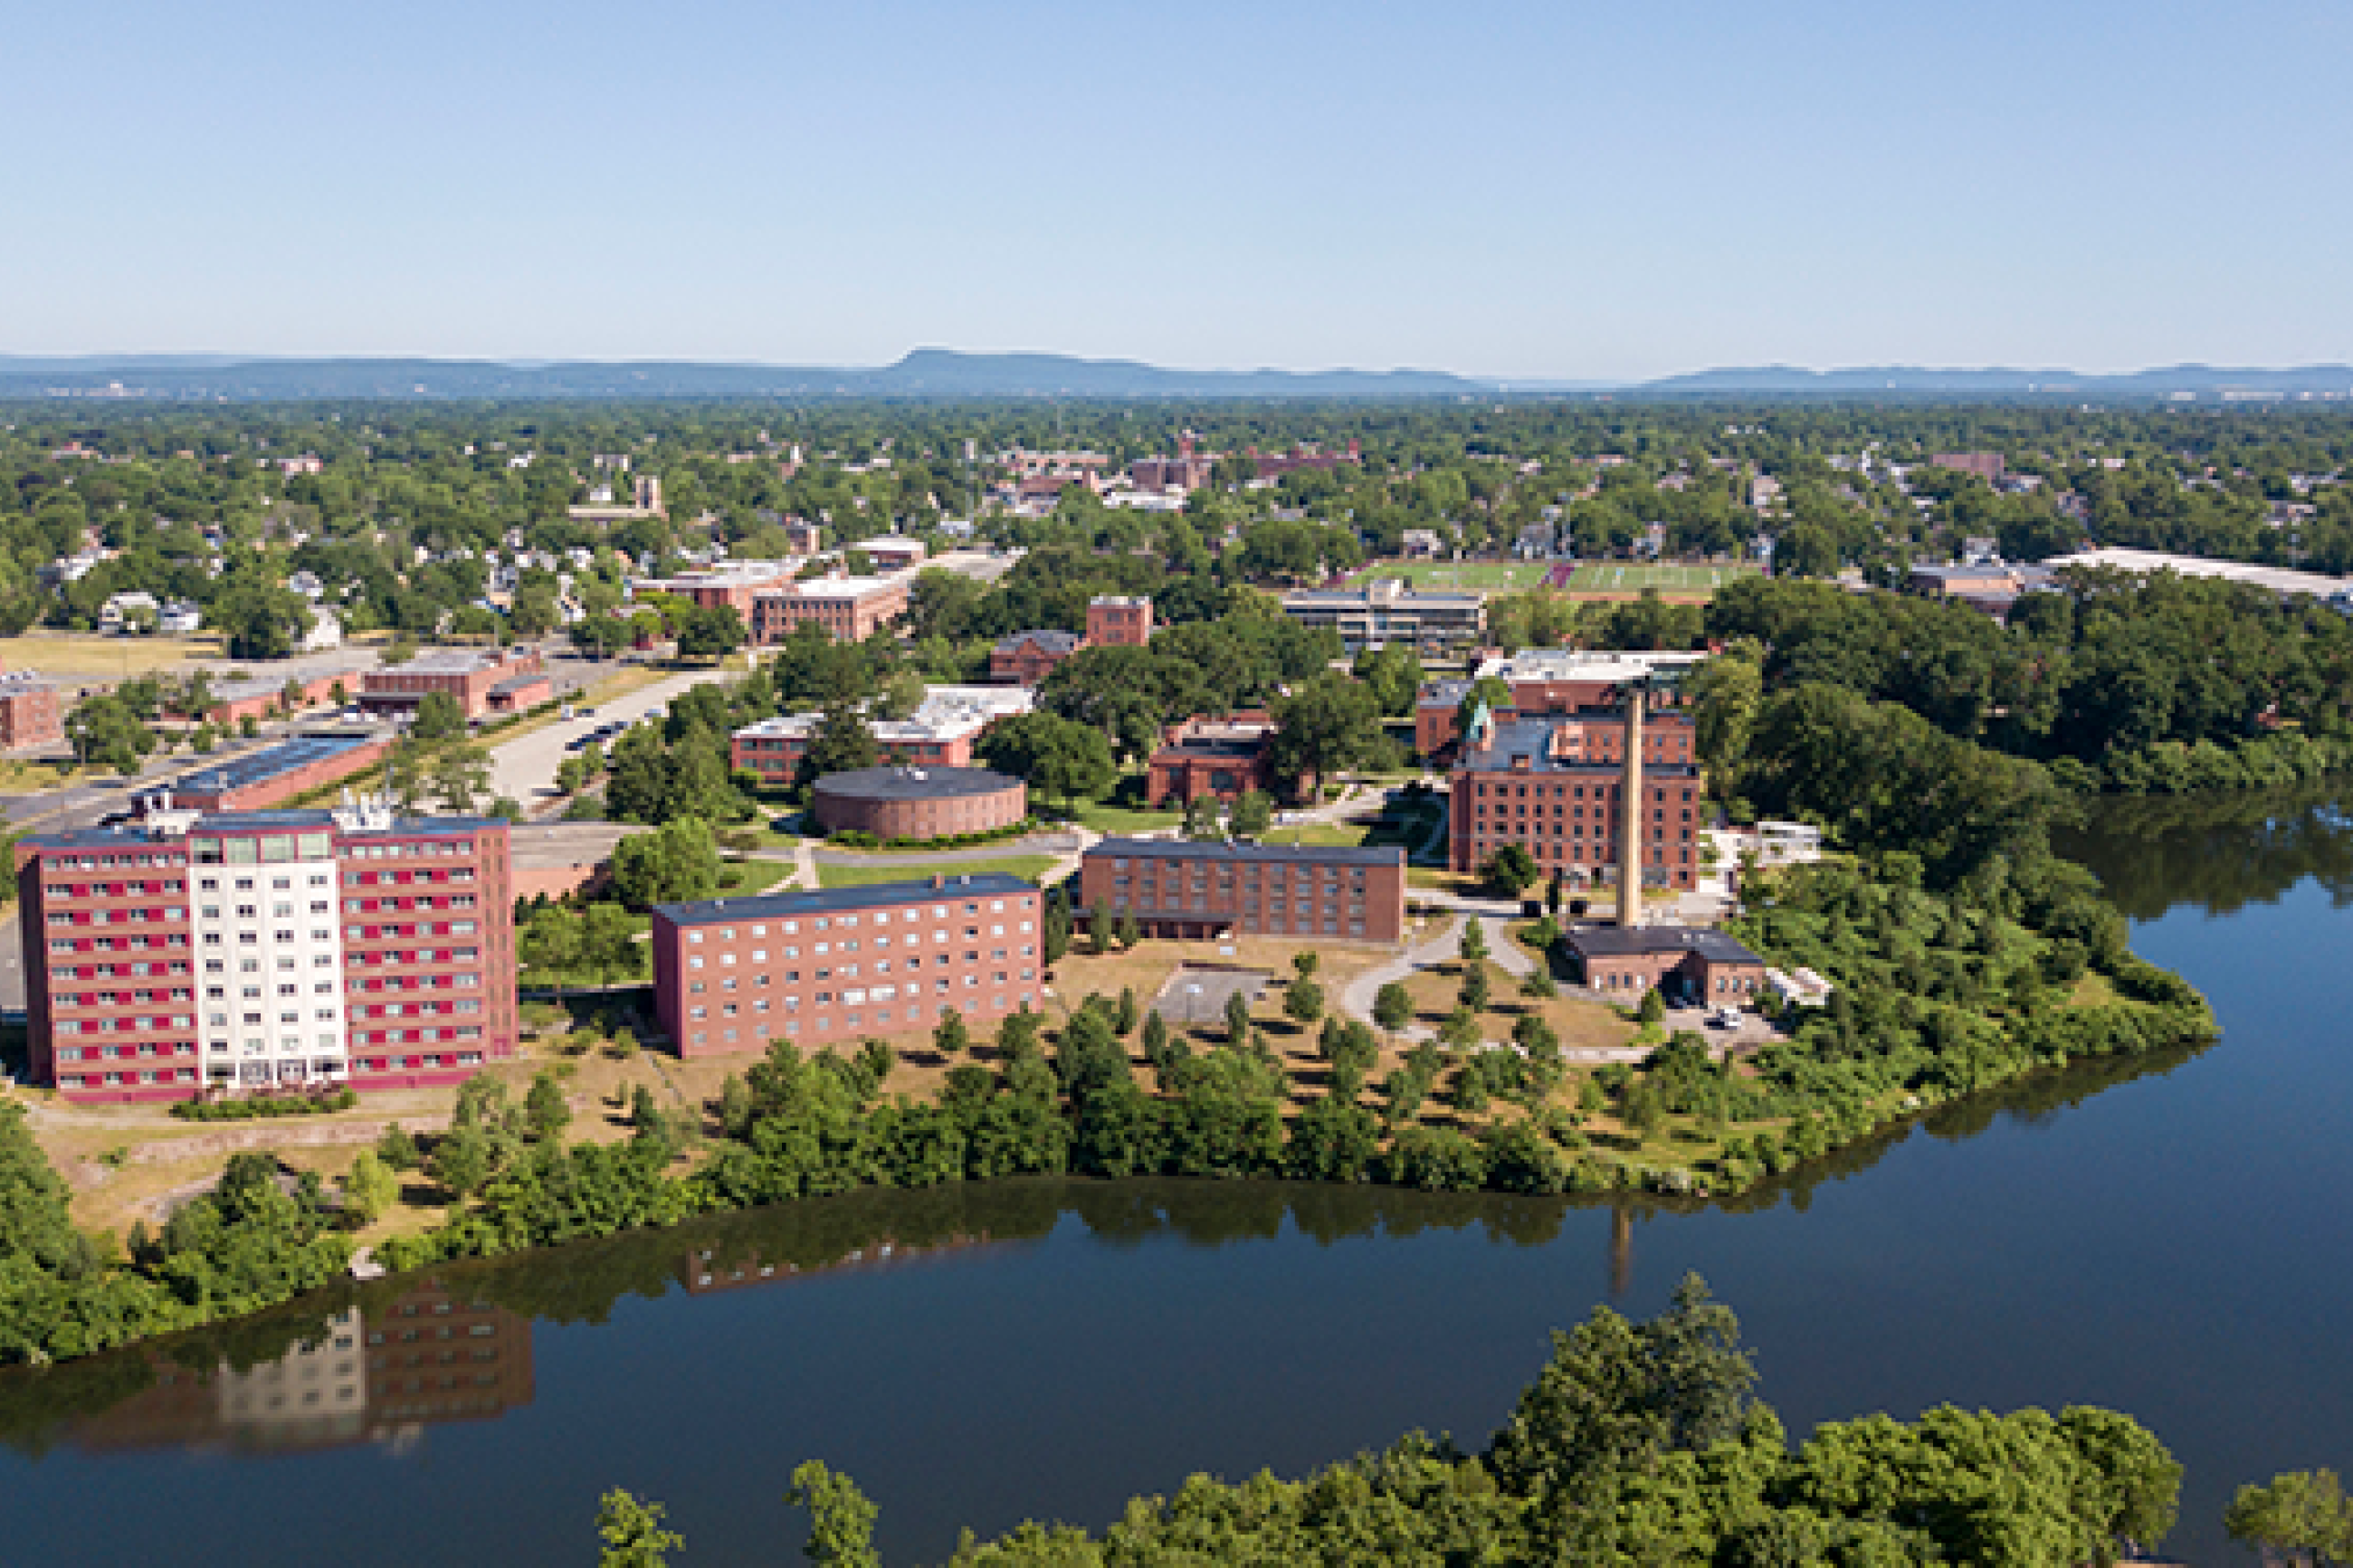 aerial shot of campus by lake